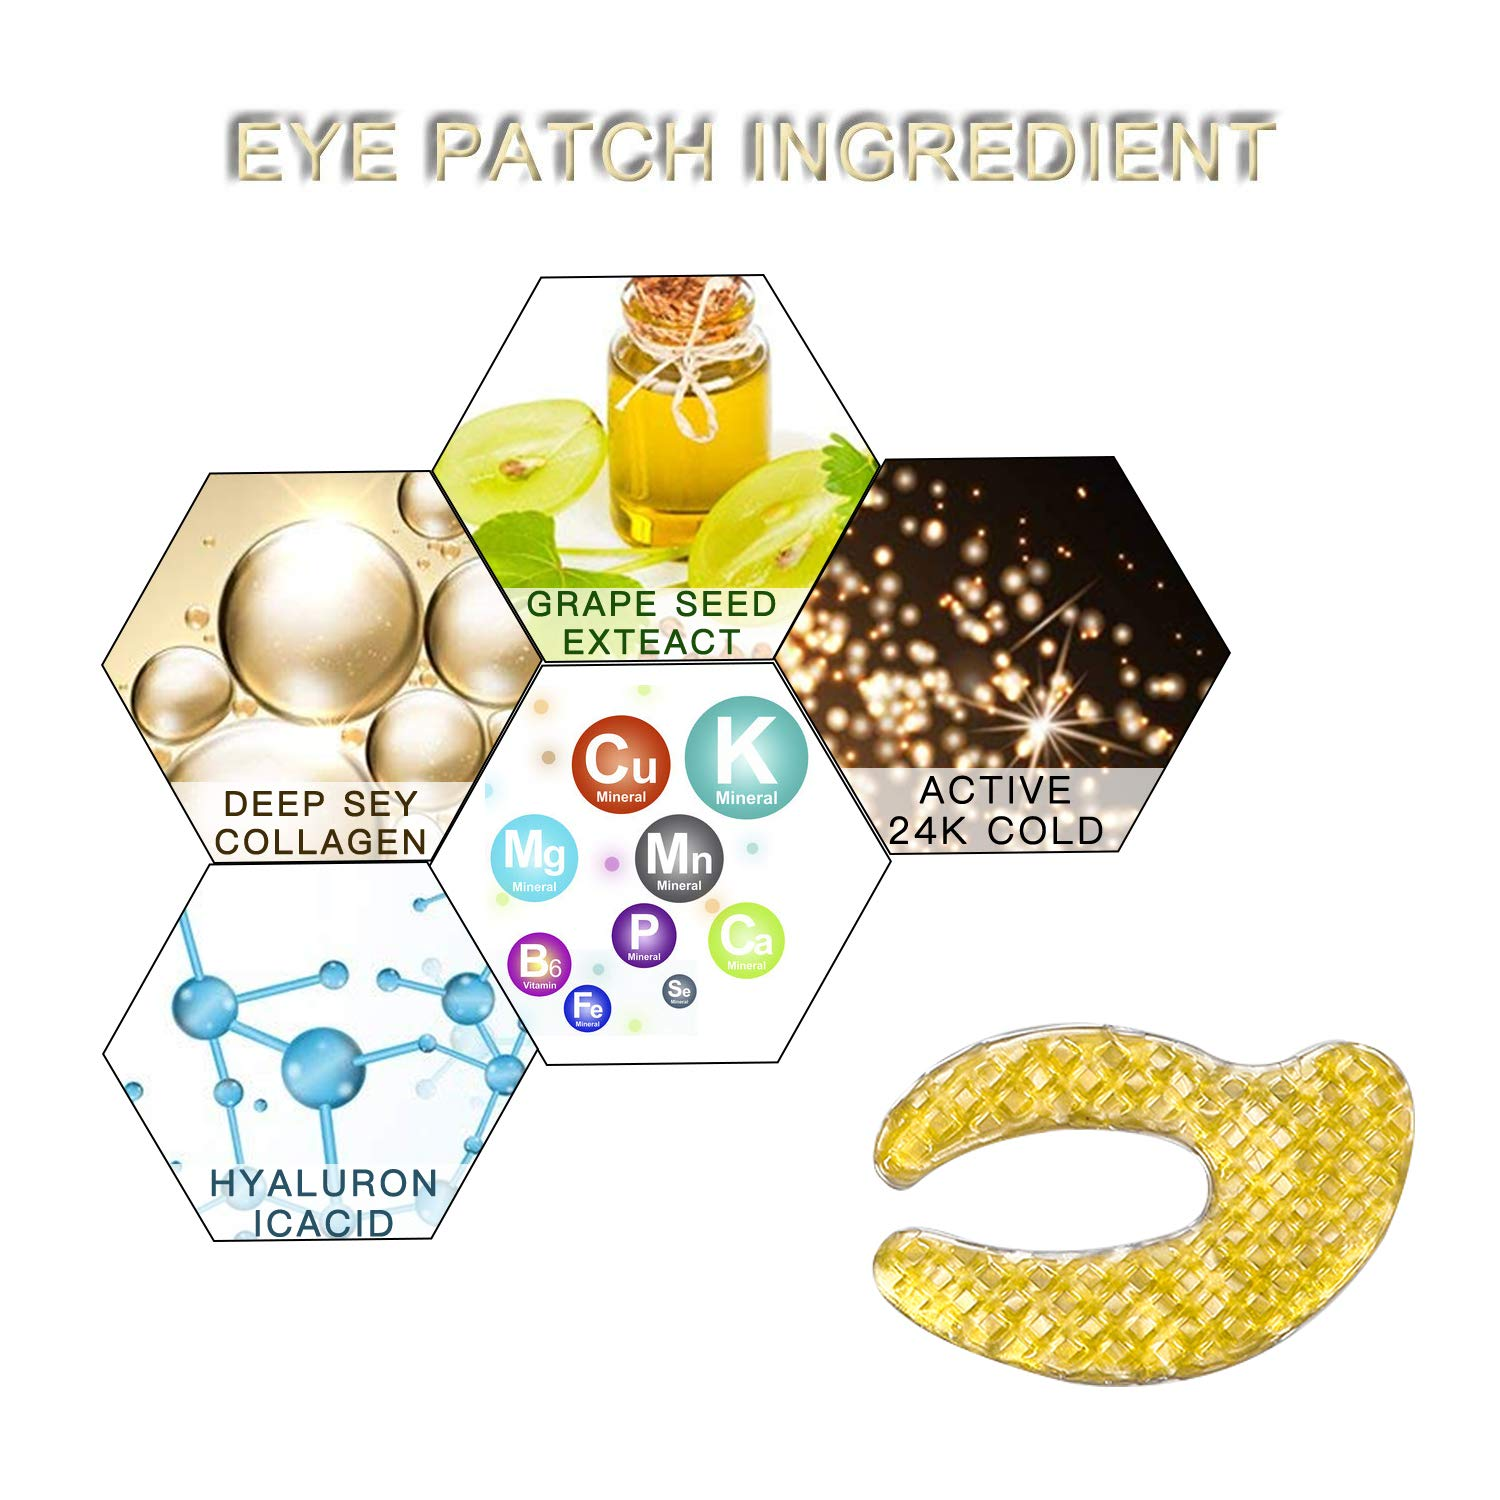 SAILINE 2018 New Deep Sea Fish Collagen Eye Mask For Dark Circles Anti-aging, soften and detoxify Puffiness Eye Treatment Pads Natural Under Eye Patches Ladys & Gentlemen Gifts (10 pairs) (gold)